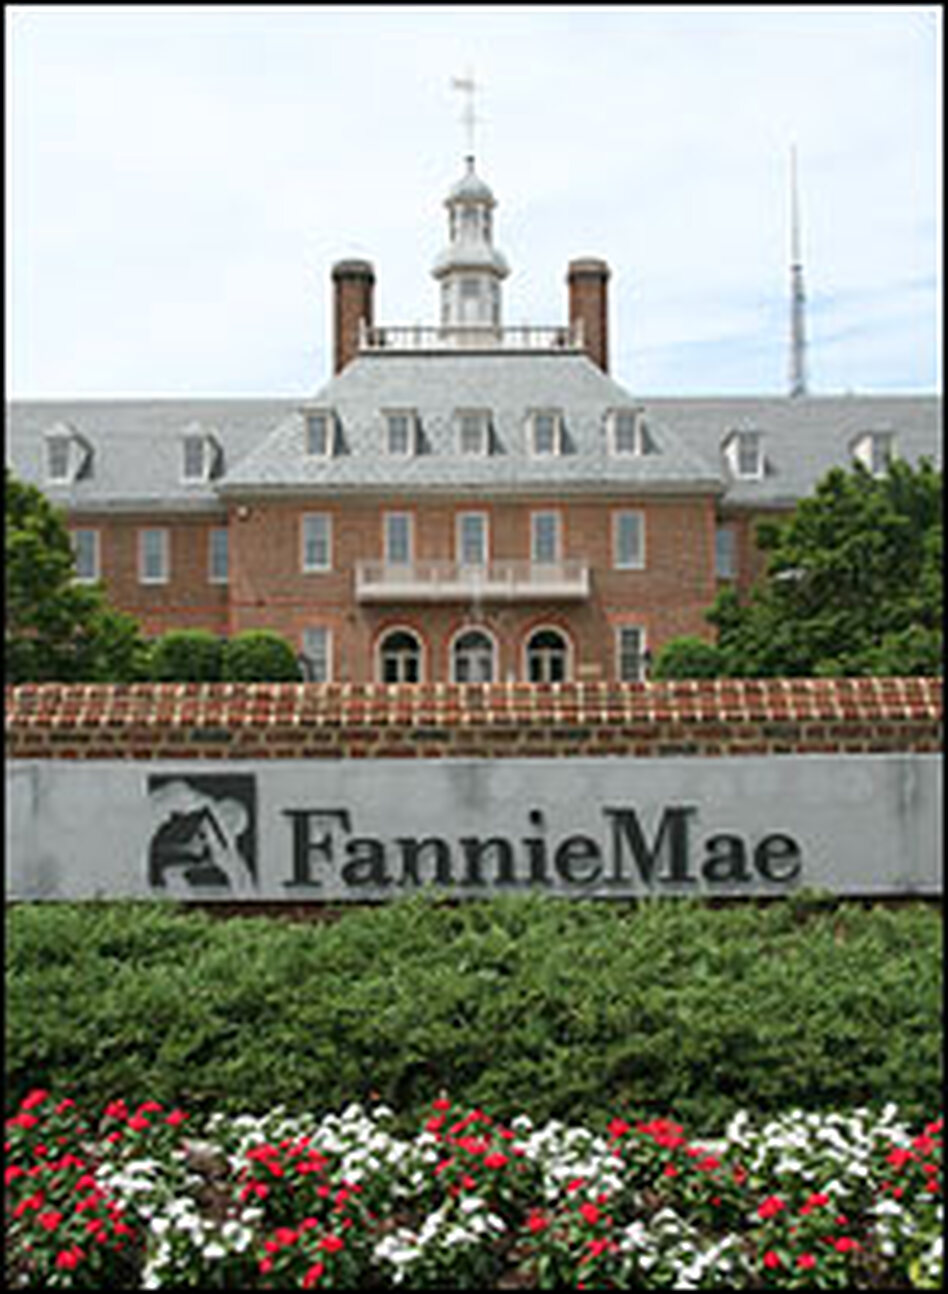 A view of Fannie Mae headquarters is seen on July 14, 2008, in Washington, D.C.